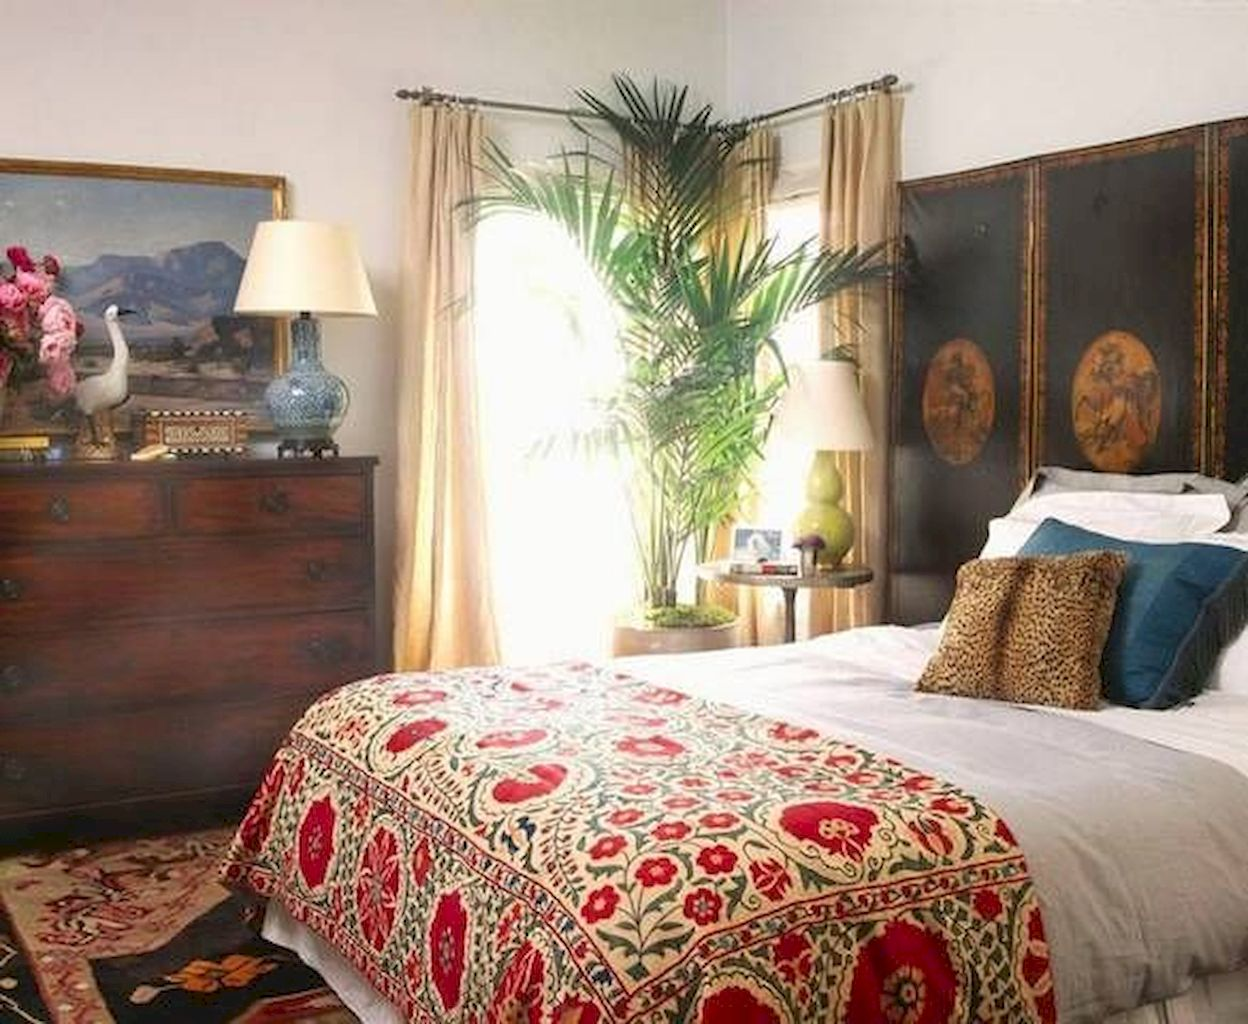 Personalized Bed Sheet Design Ideas In 30 Images Elonahome Com